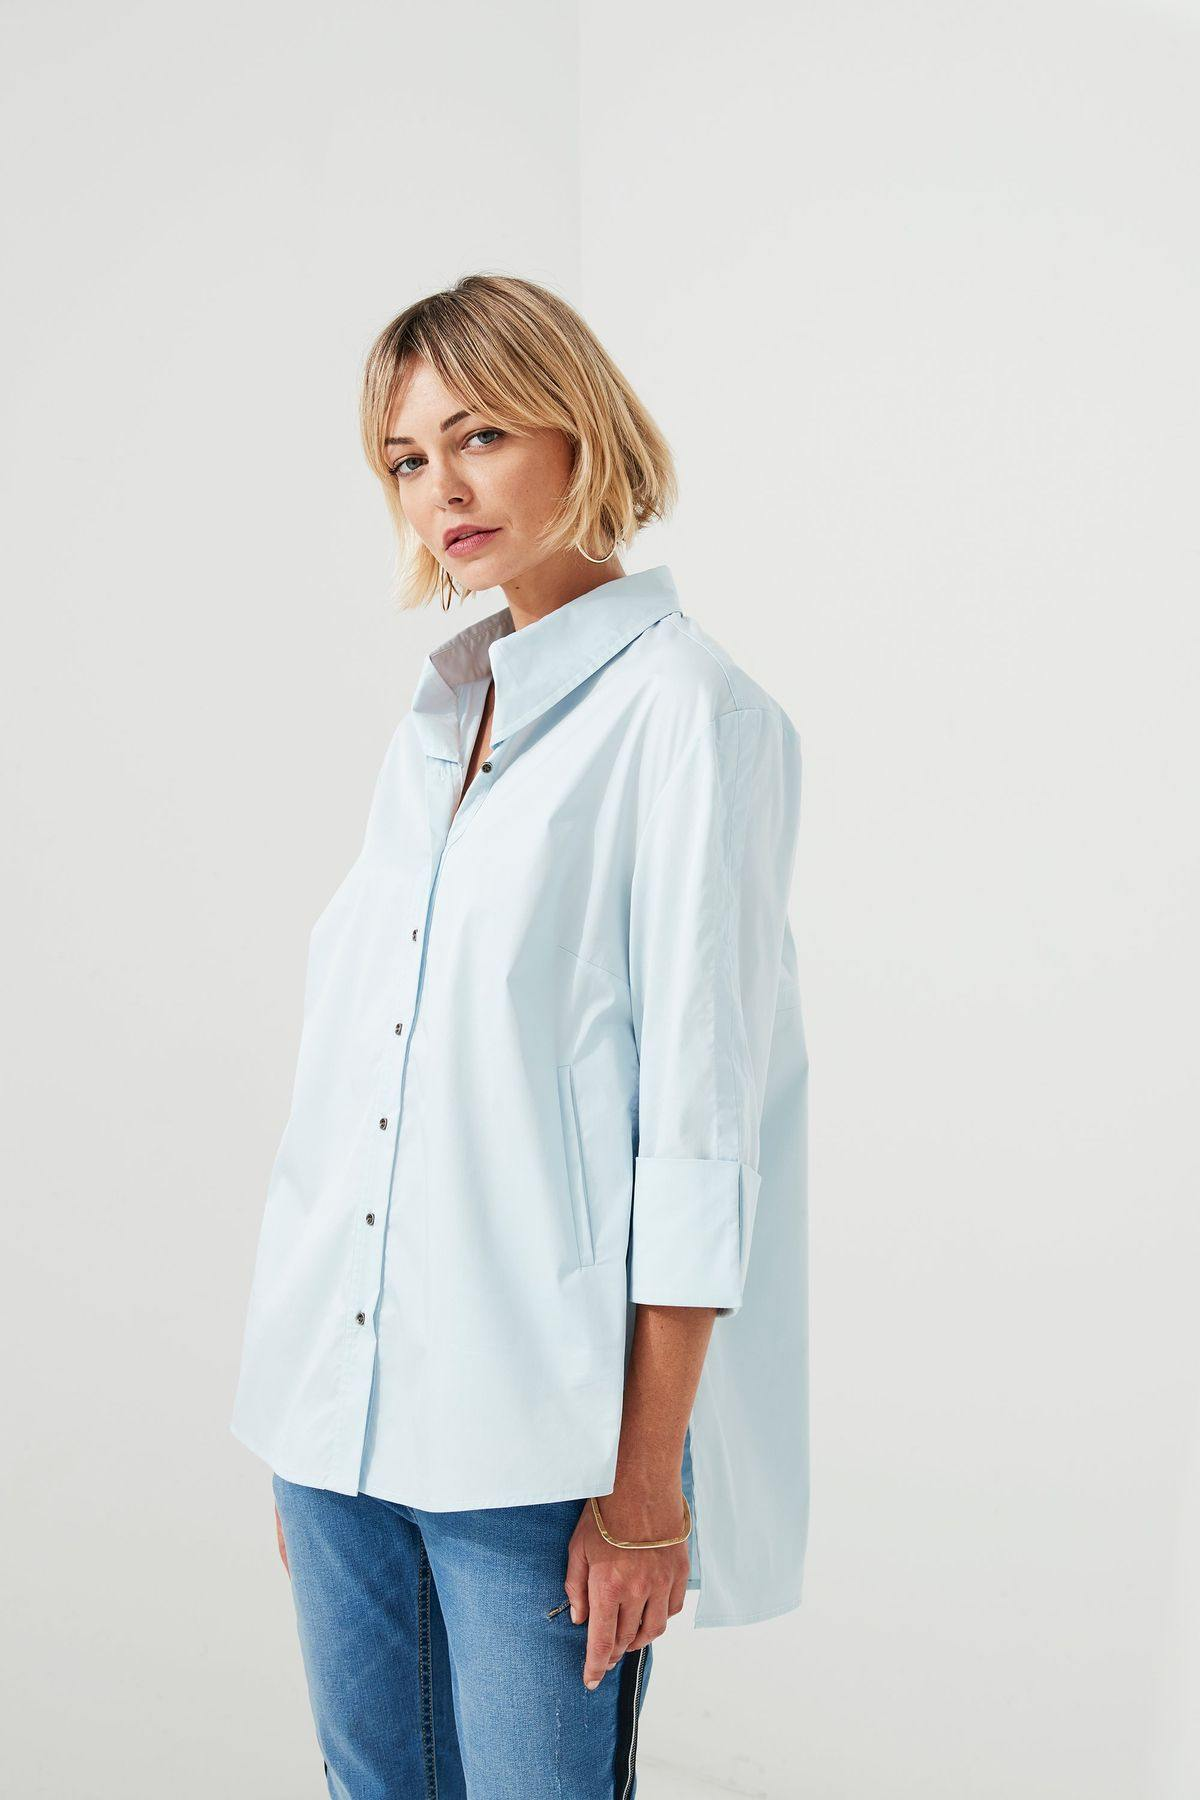 Lania The Label Navigate Shirt in Sky Blue - Weekends on 2nd Ave